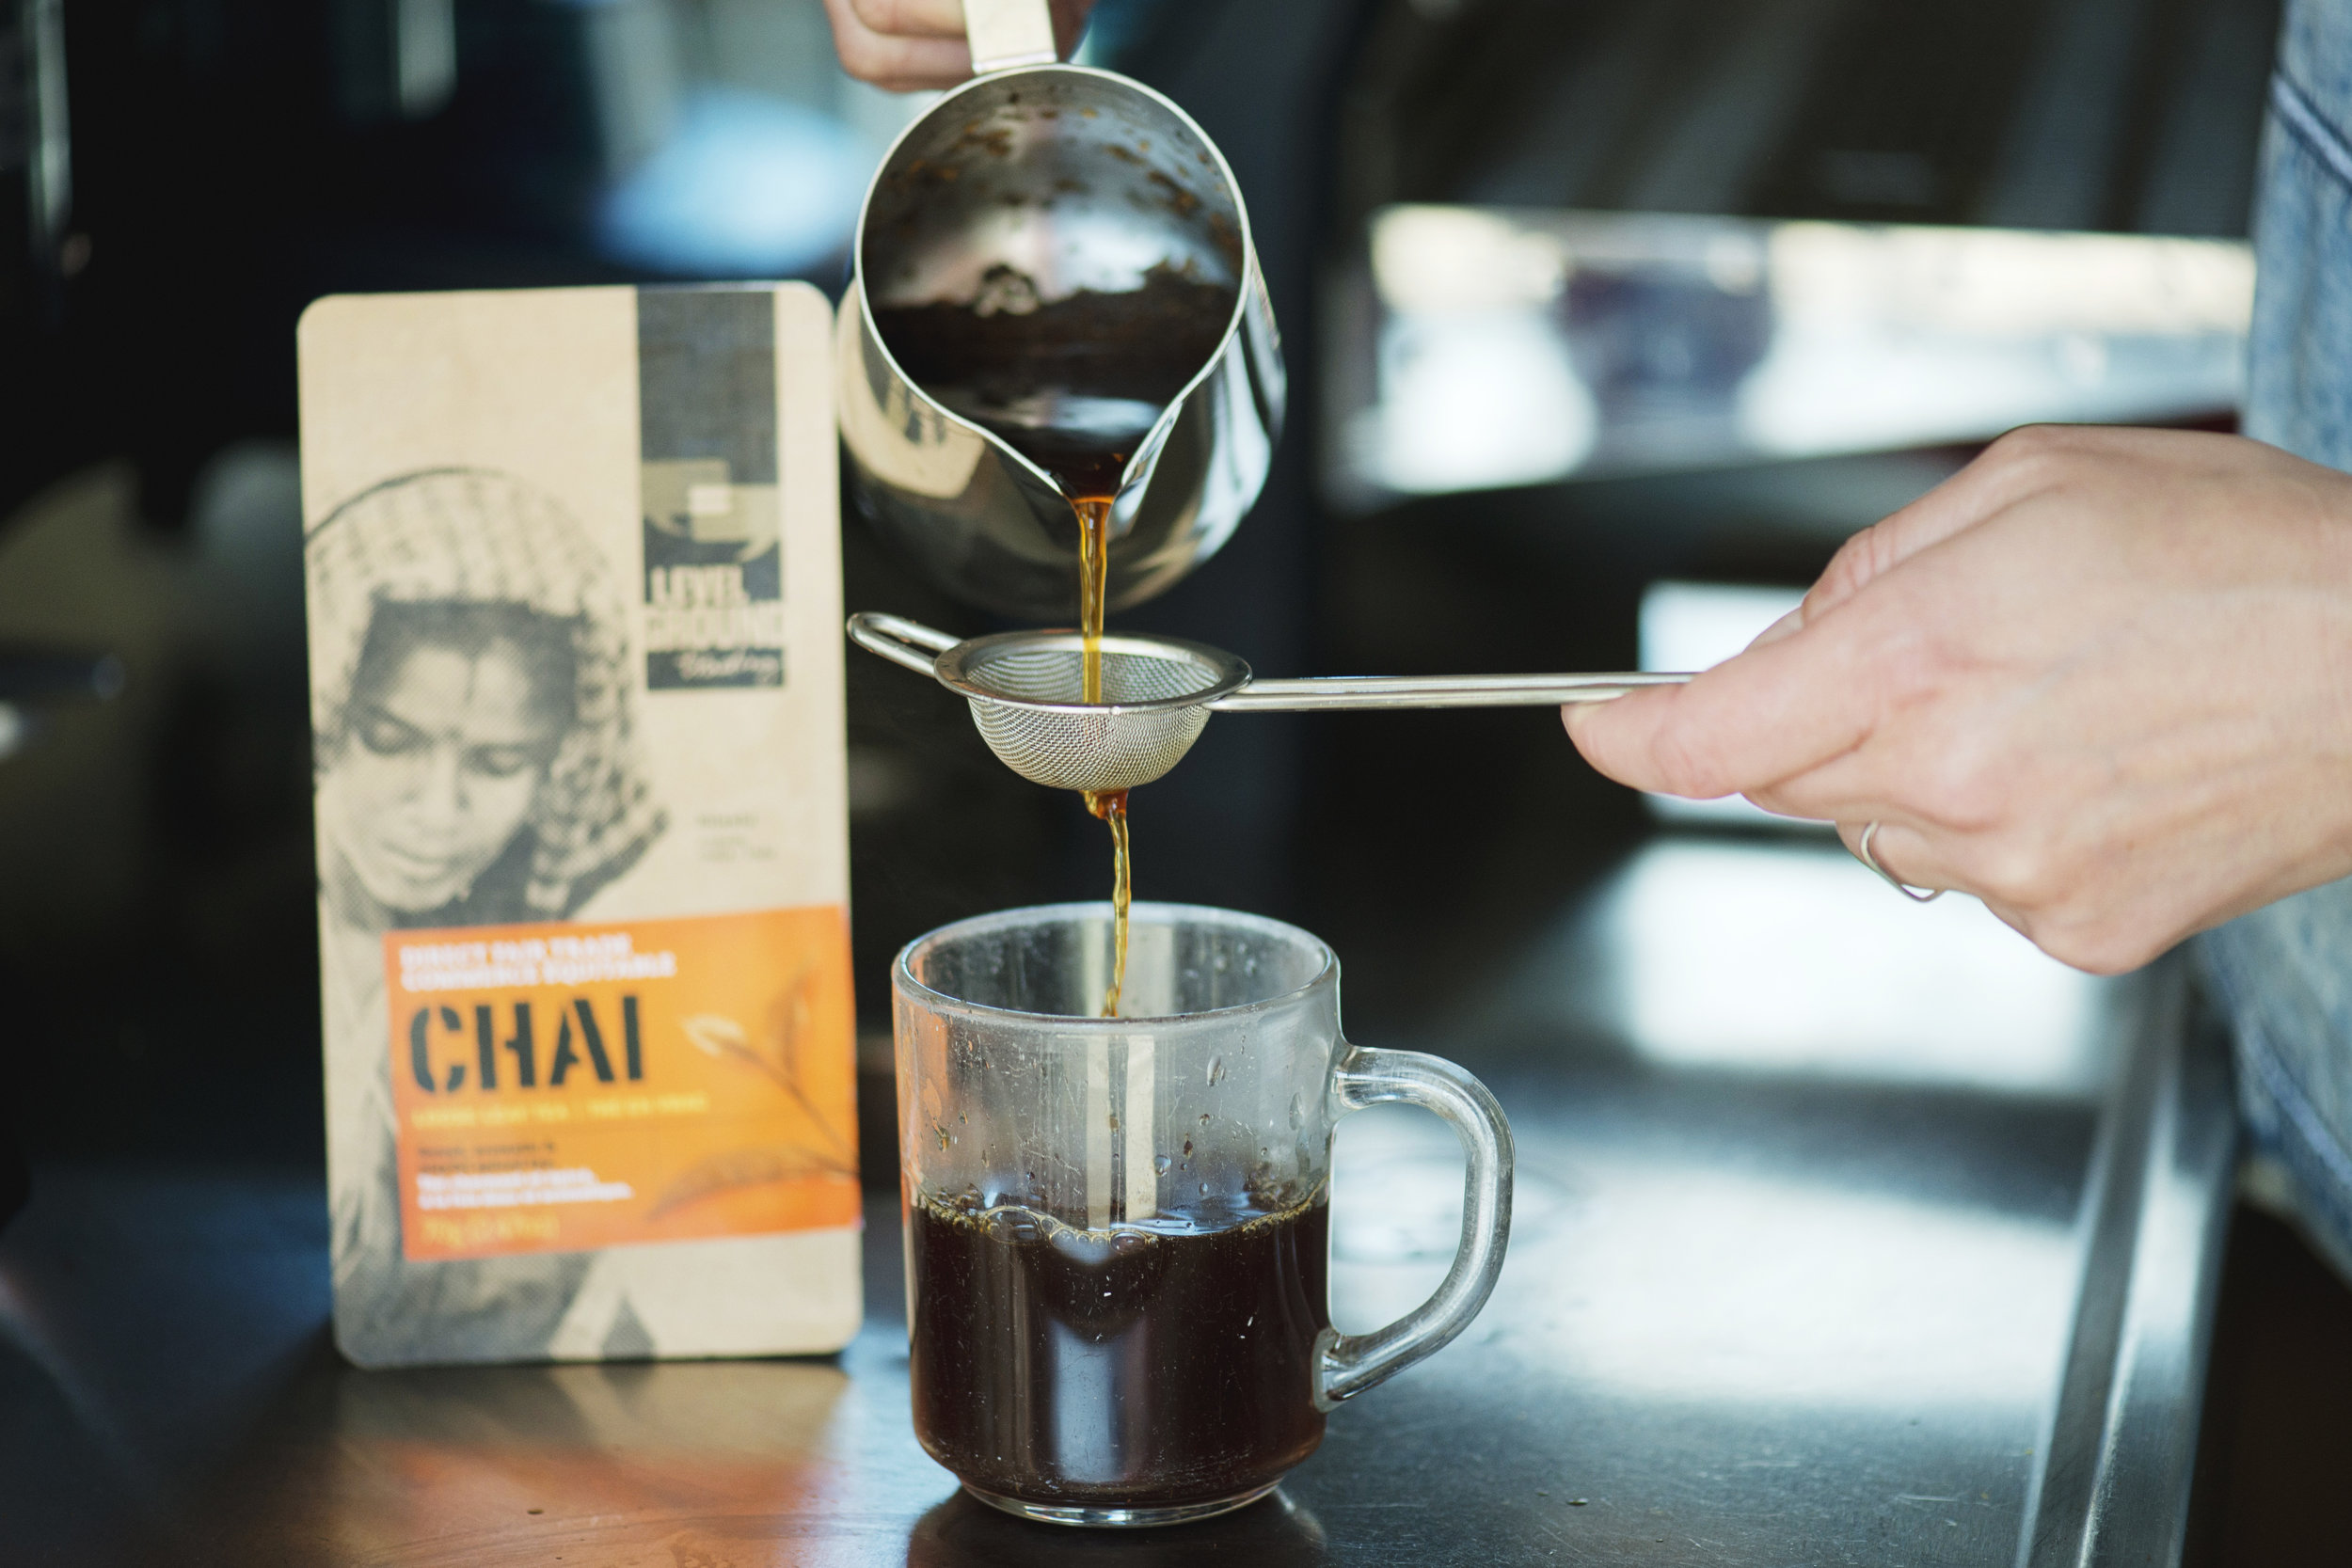 Loose leaf chai, blended with fresh spices from Sri Lanka